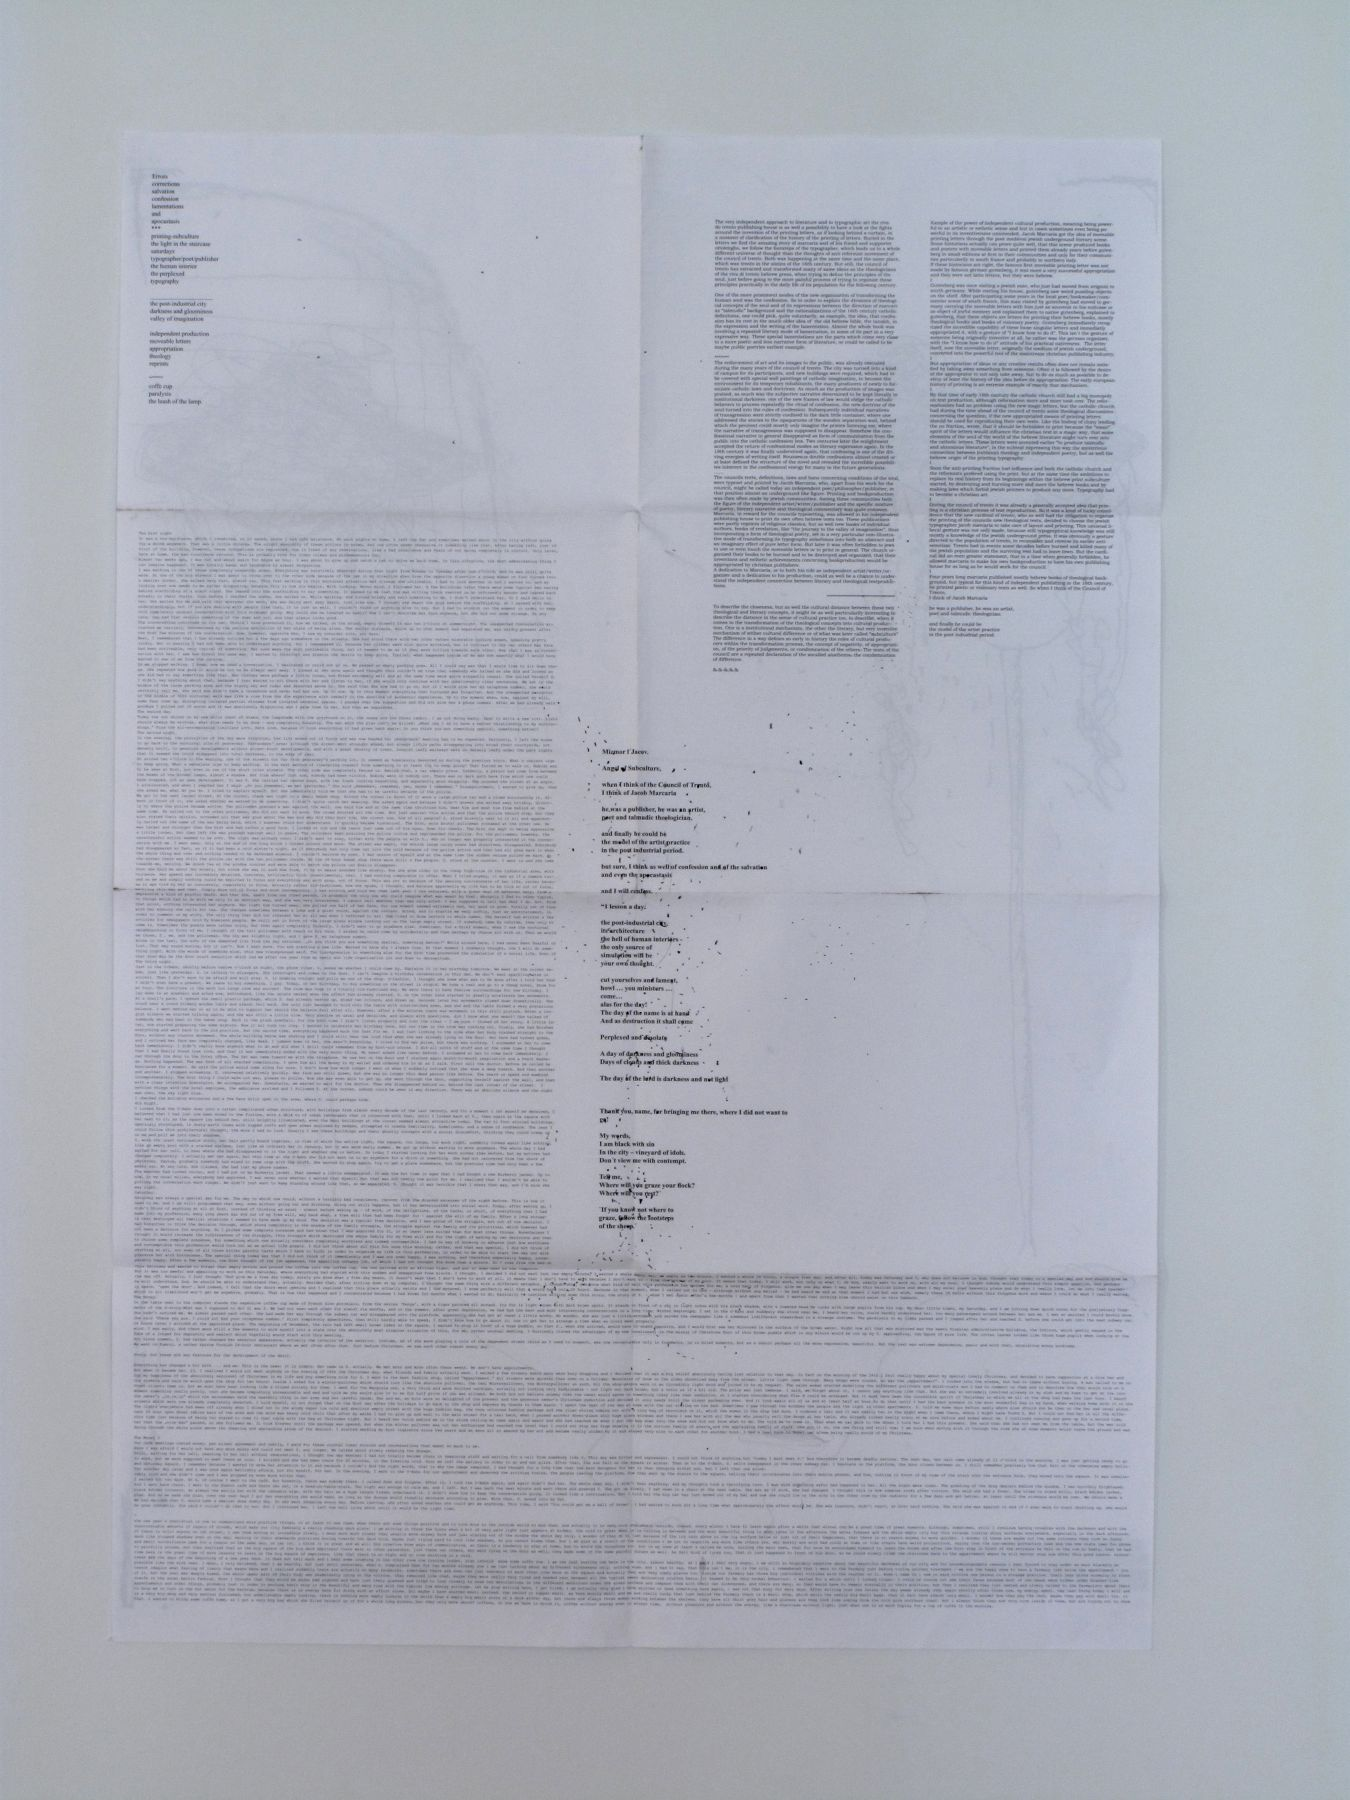 josef strau, Confession and Lamentation, 2008, inkjet print poster, 38 ½ x 26 ½ inches